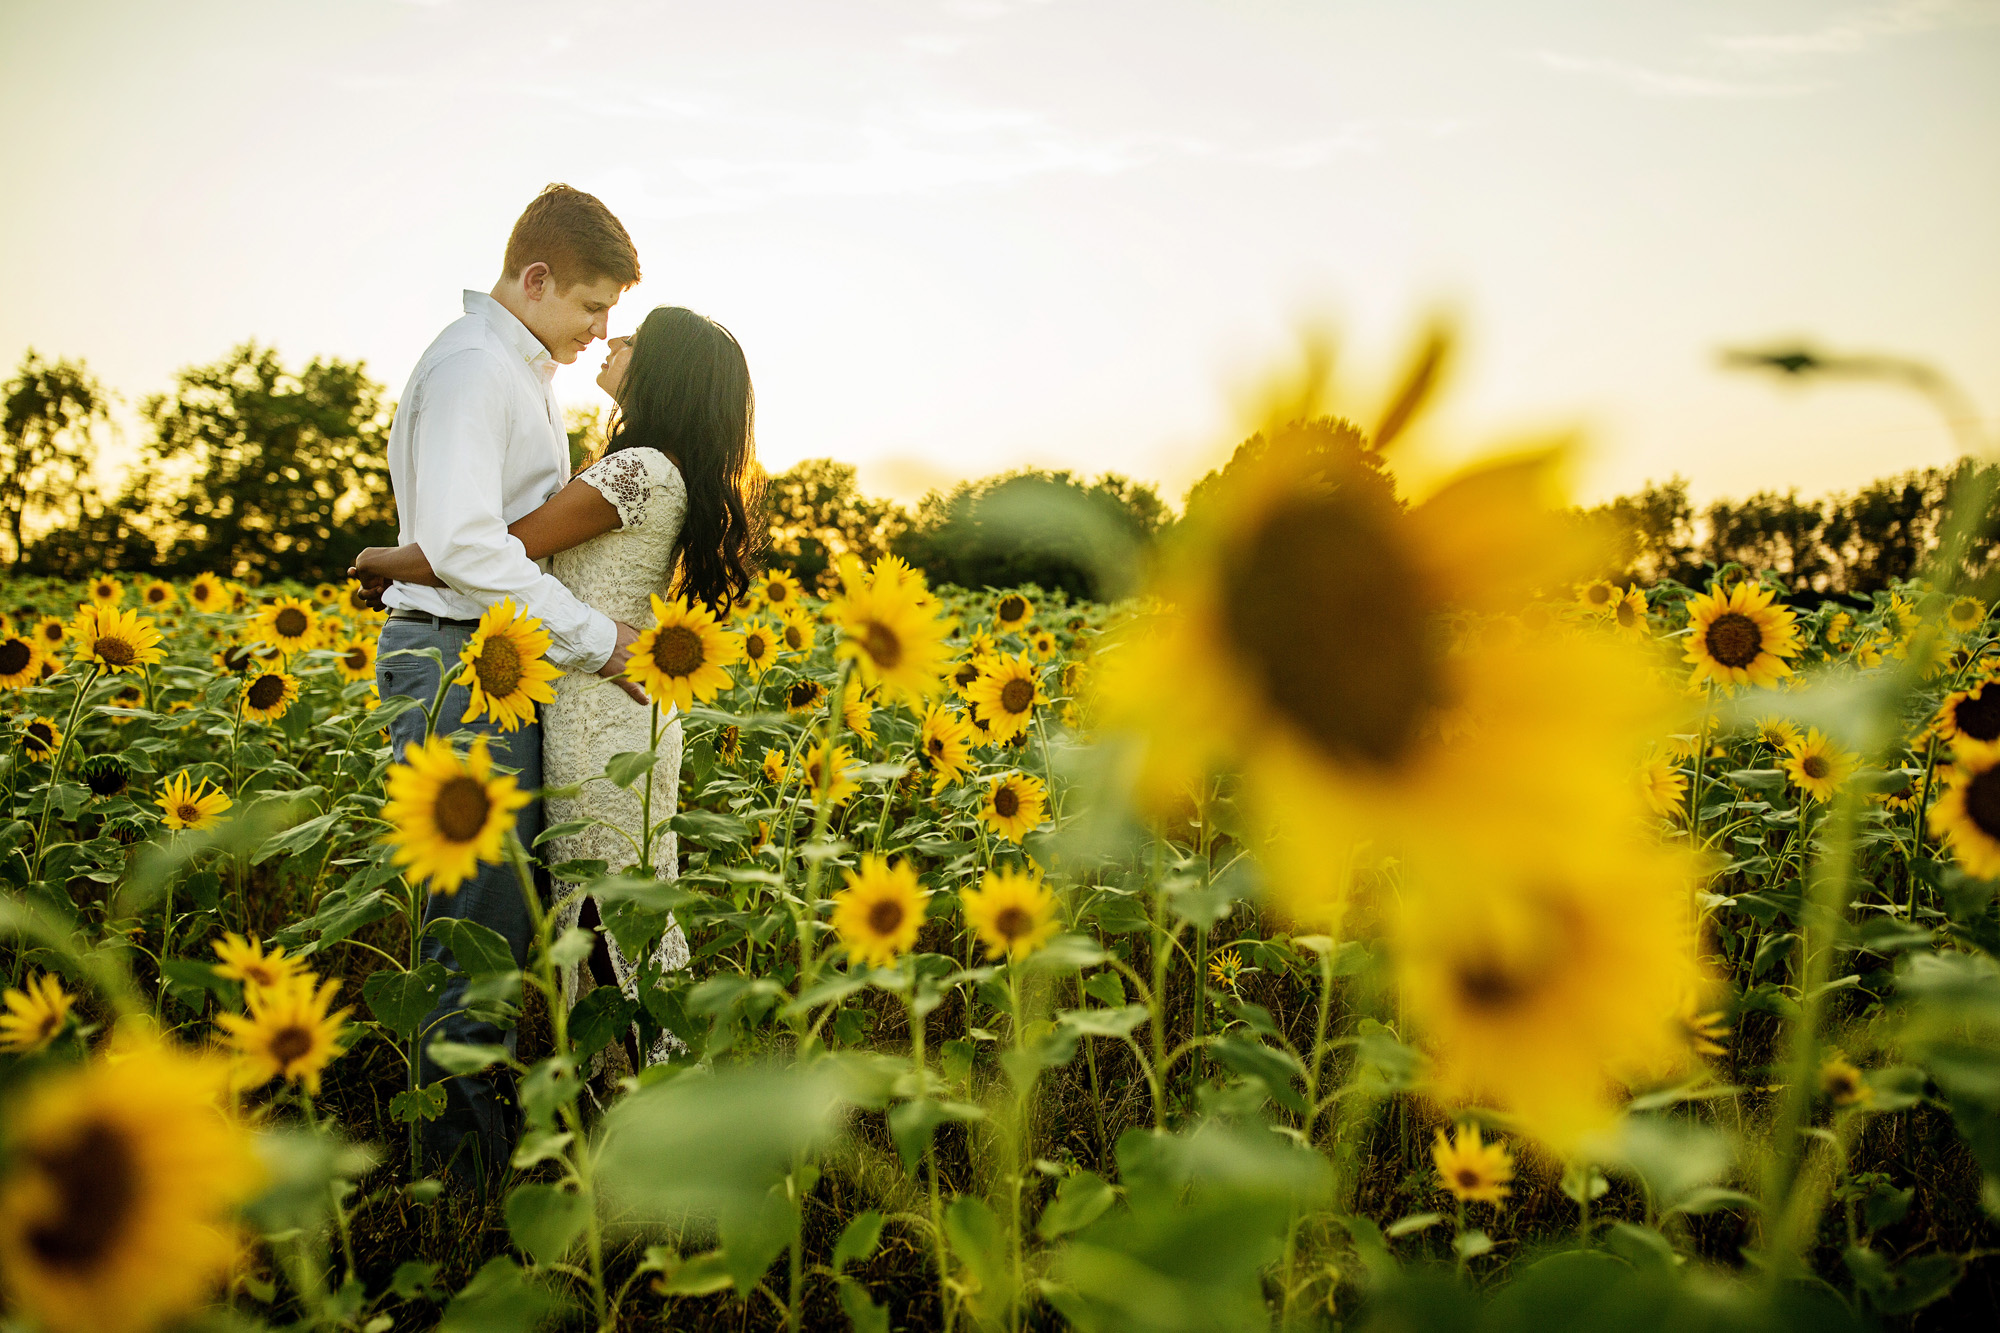 Seriously_Sabrina_Photography_Lexington_Midway_Kentucky_Engagement_Merefield_Sunflowers_Naz_and_Drew3.jpg